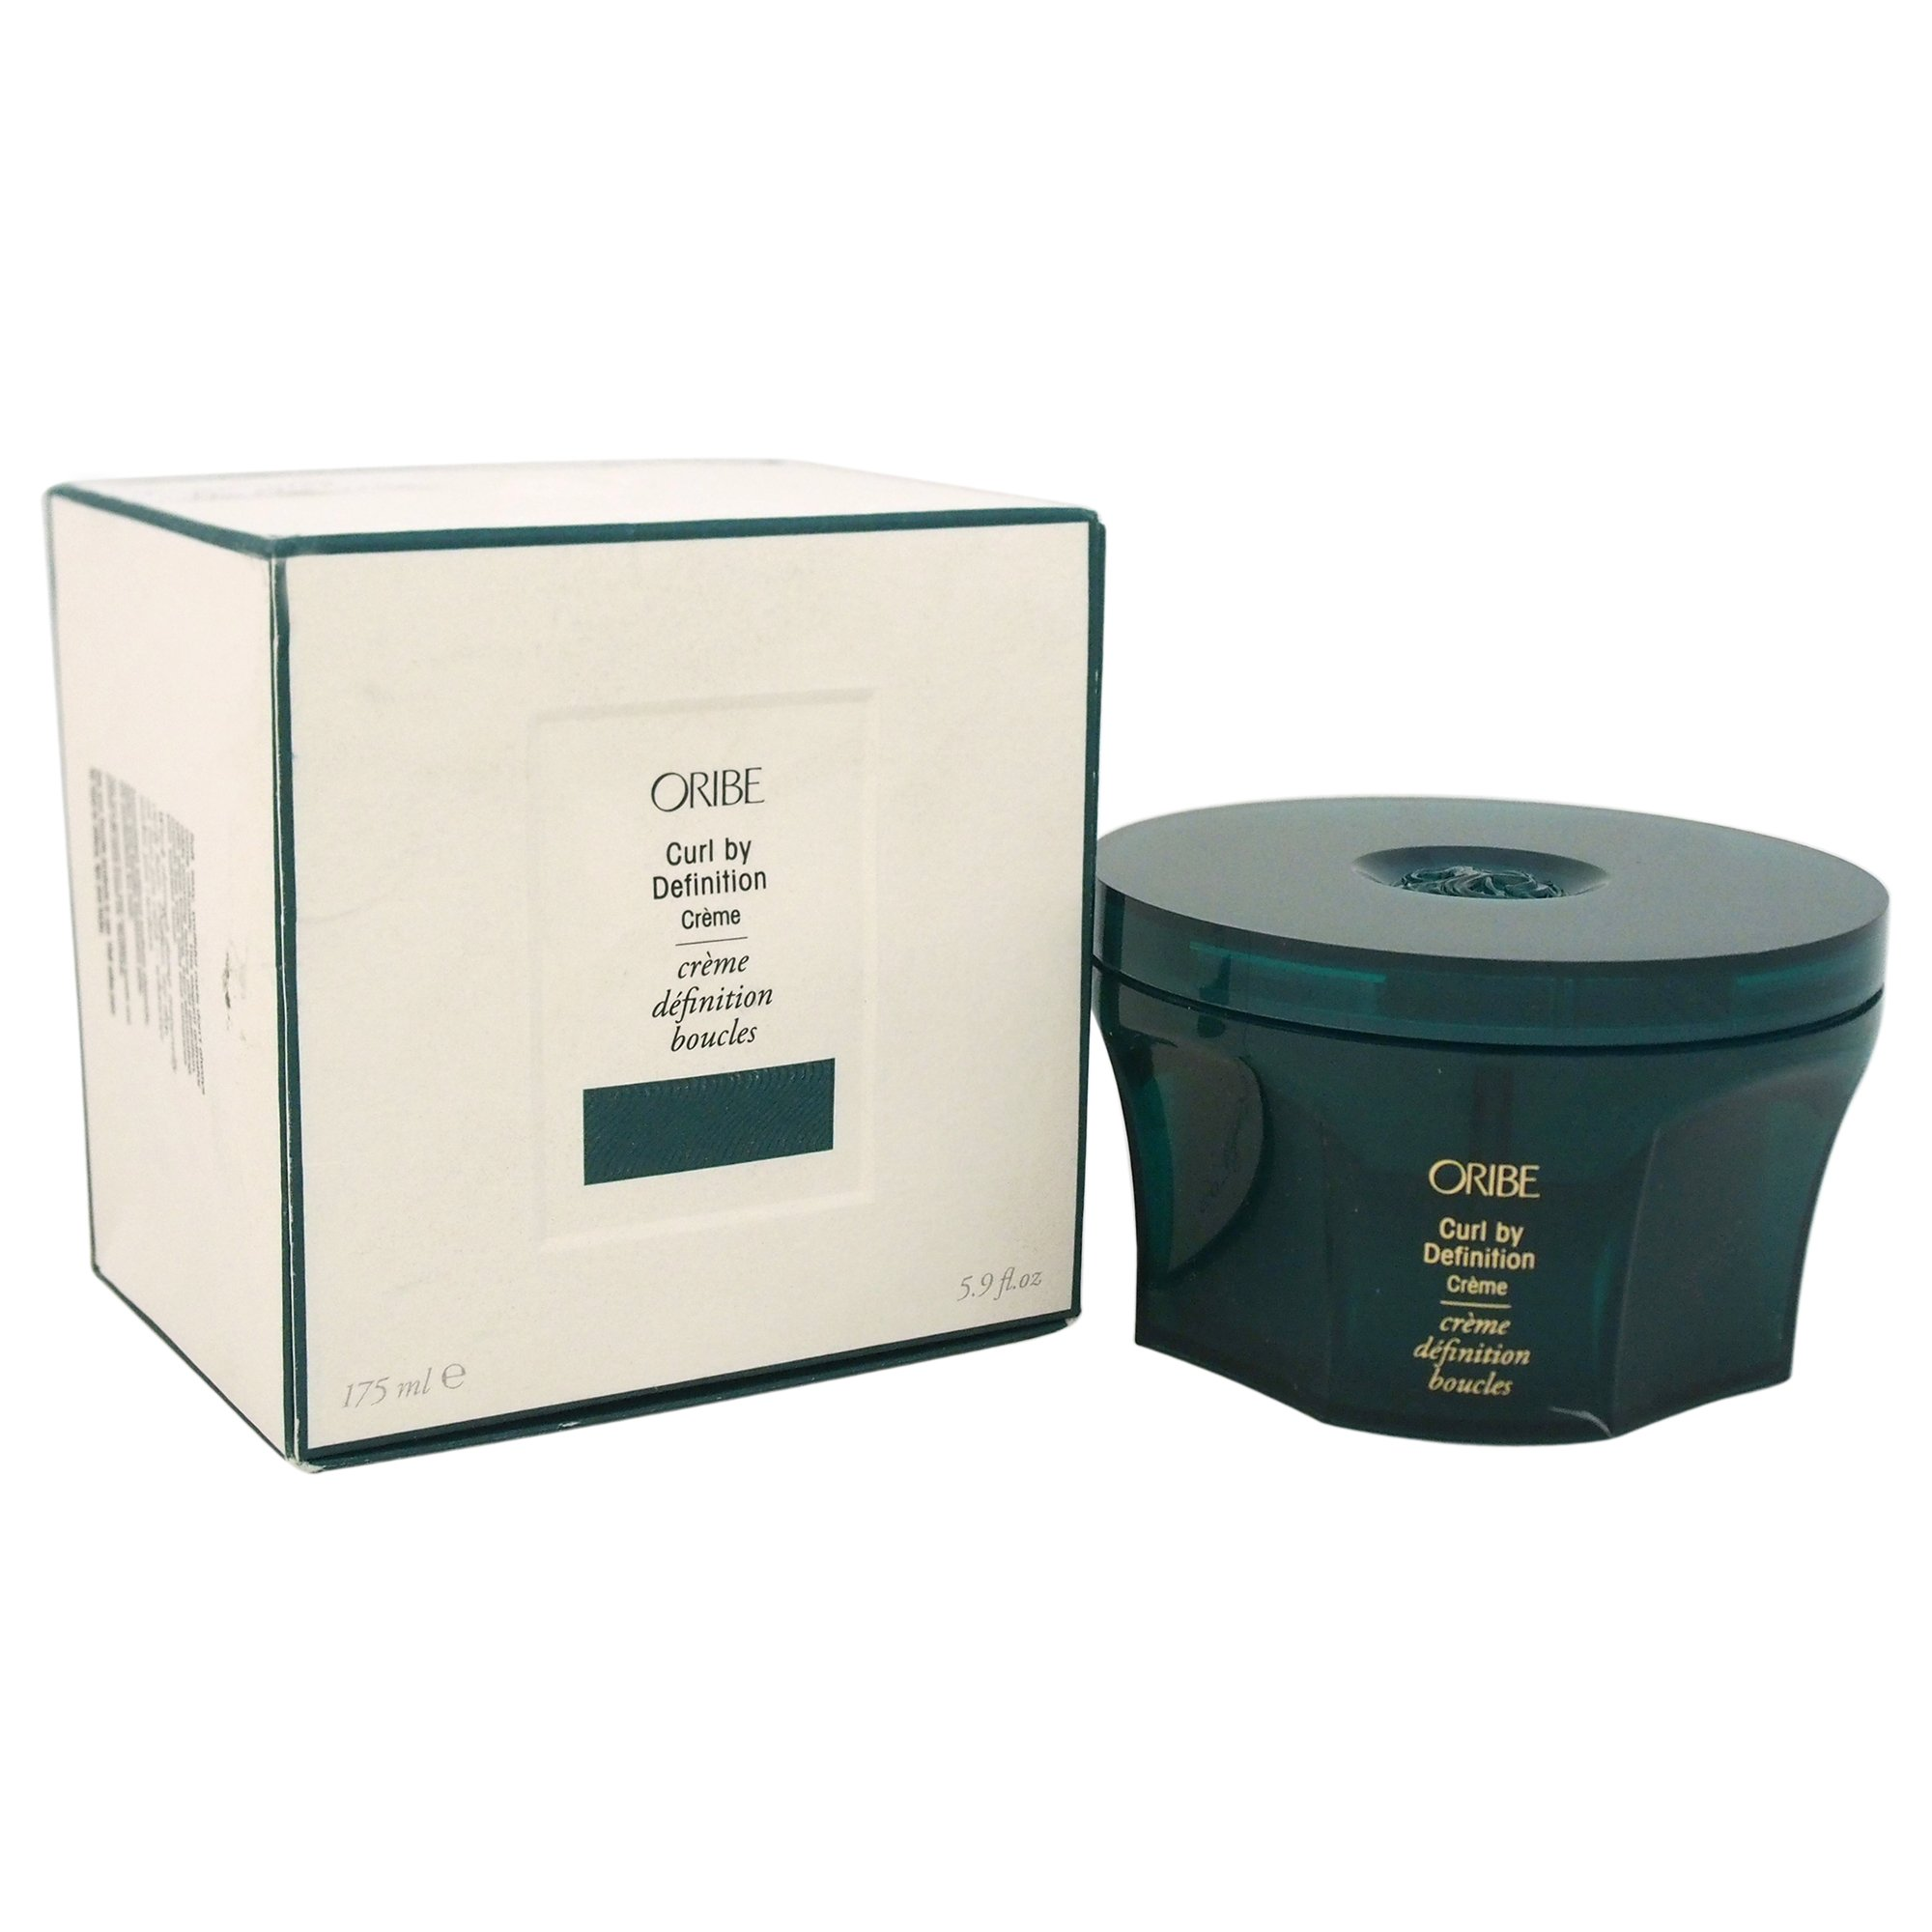 ORIBE Curl by Definition Crème, 5.9 Fl Oz